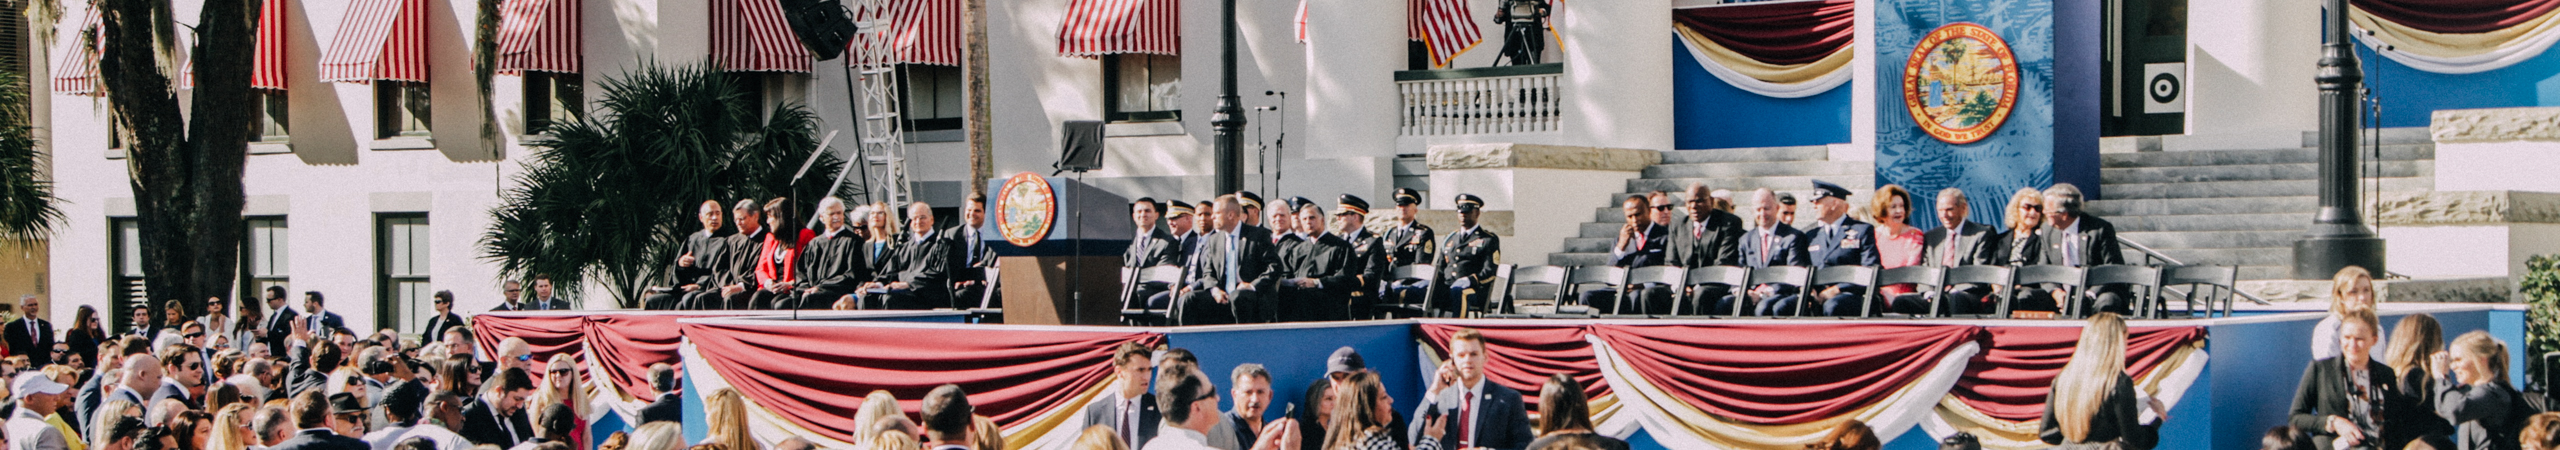 Ron Desantis Sworn in as 46th Governer – Swearing in Cermony